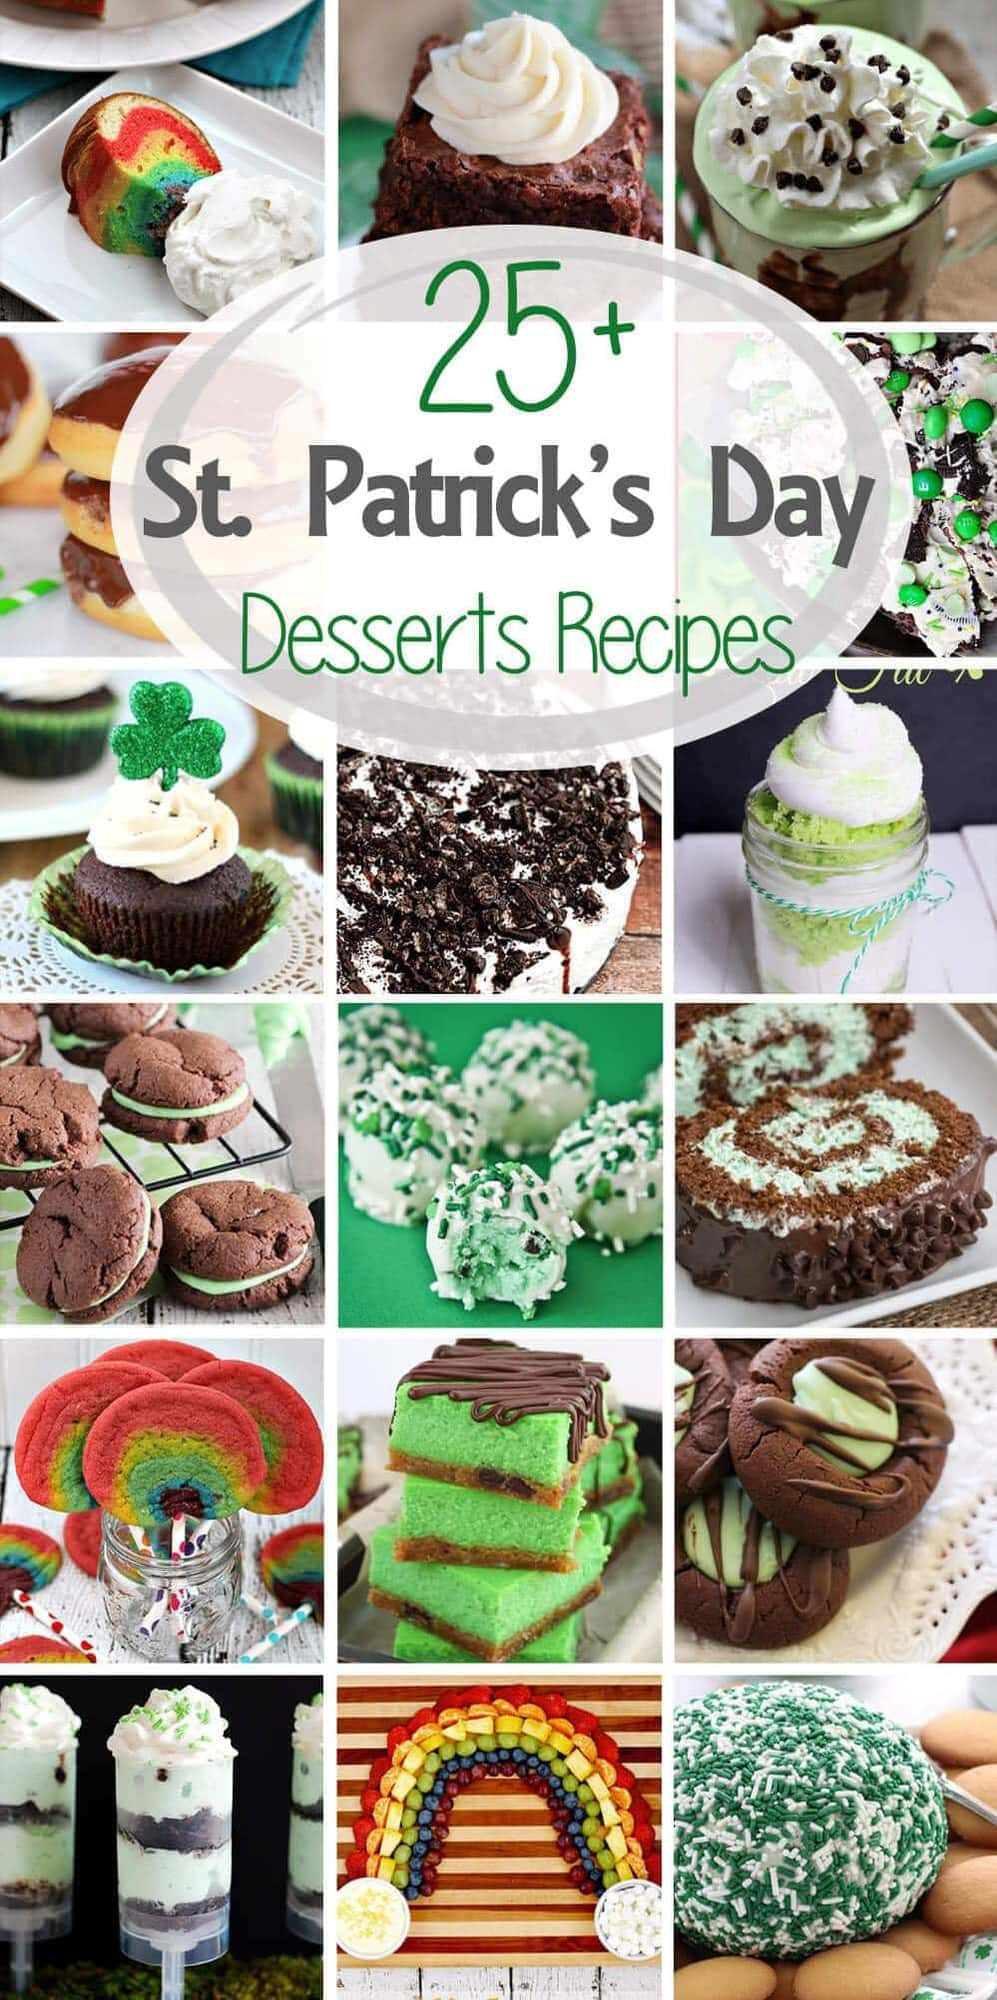 25+ St. Patrick's Day Dessert Recipes ~ Get ready for all things green and rainbows. This round up is filled with St. Patrick's Day Desserts from the best bloggers!